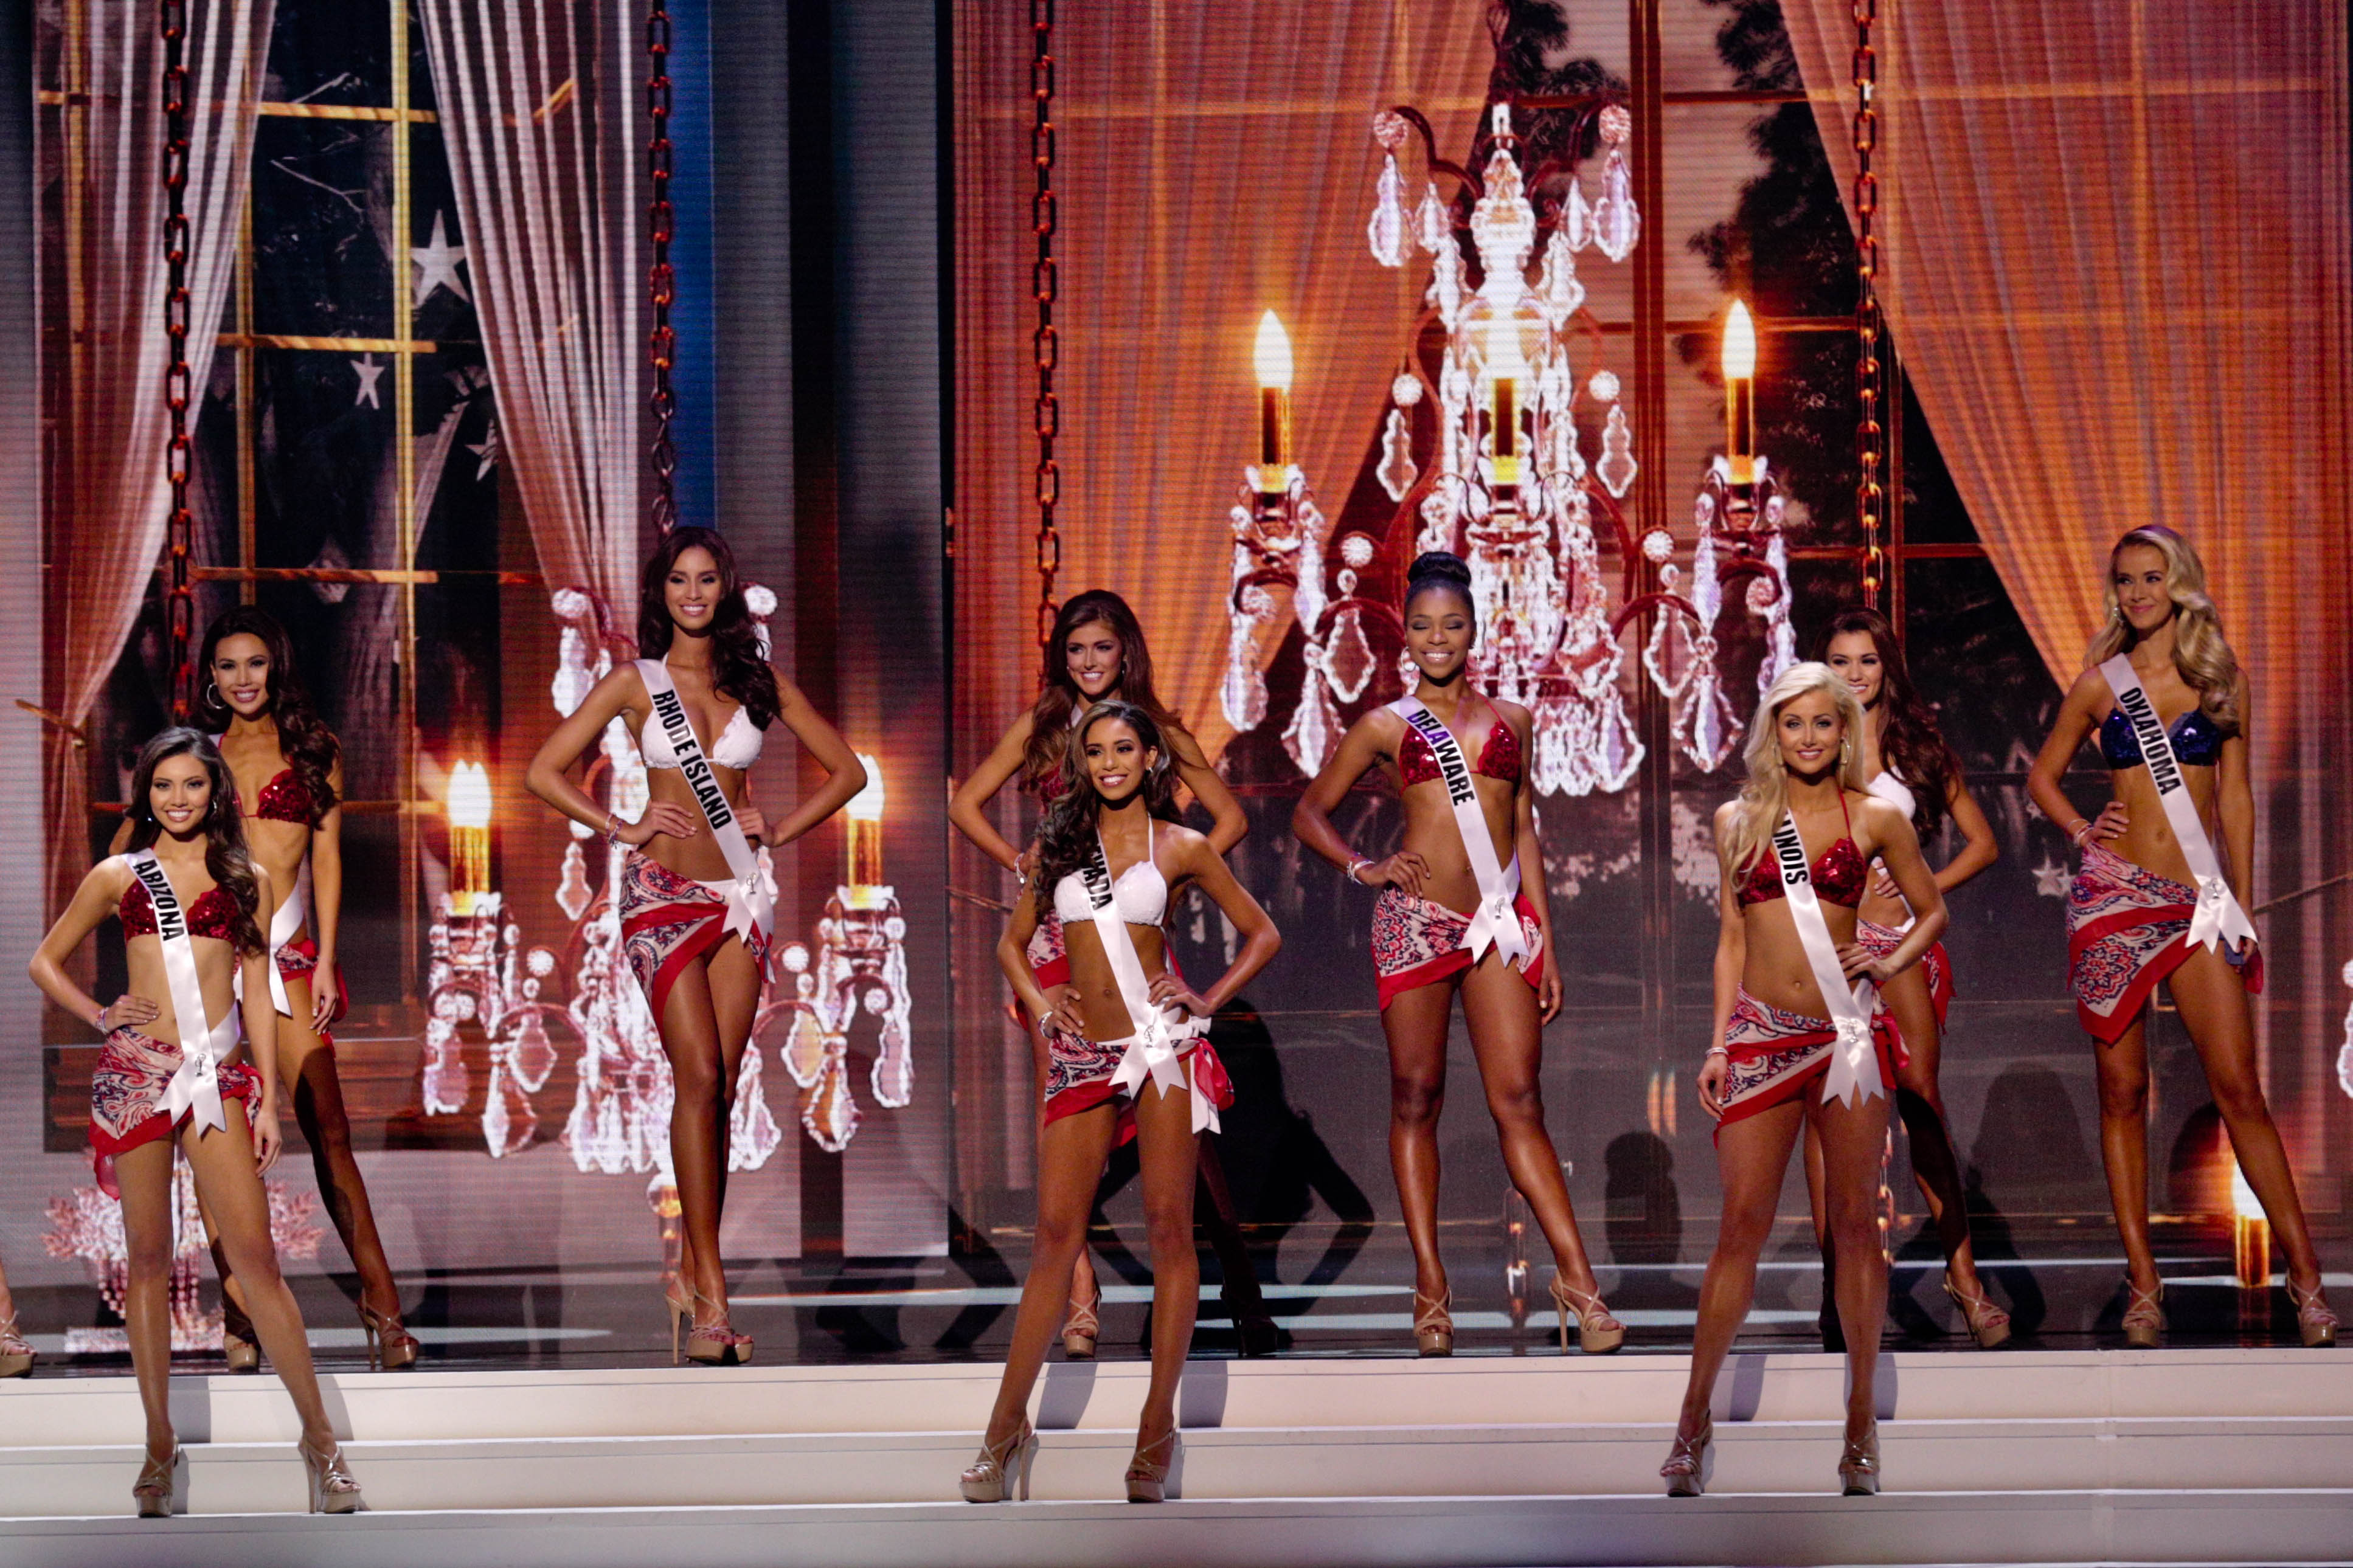 Women Shaming And Race Issues At Miss Usa A Pageant Designed To Embarrass Women And Make Them Go Viral Salon Com